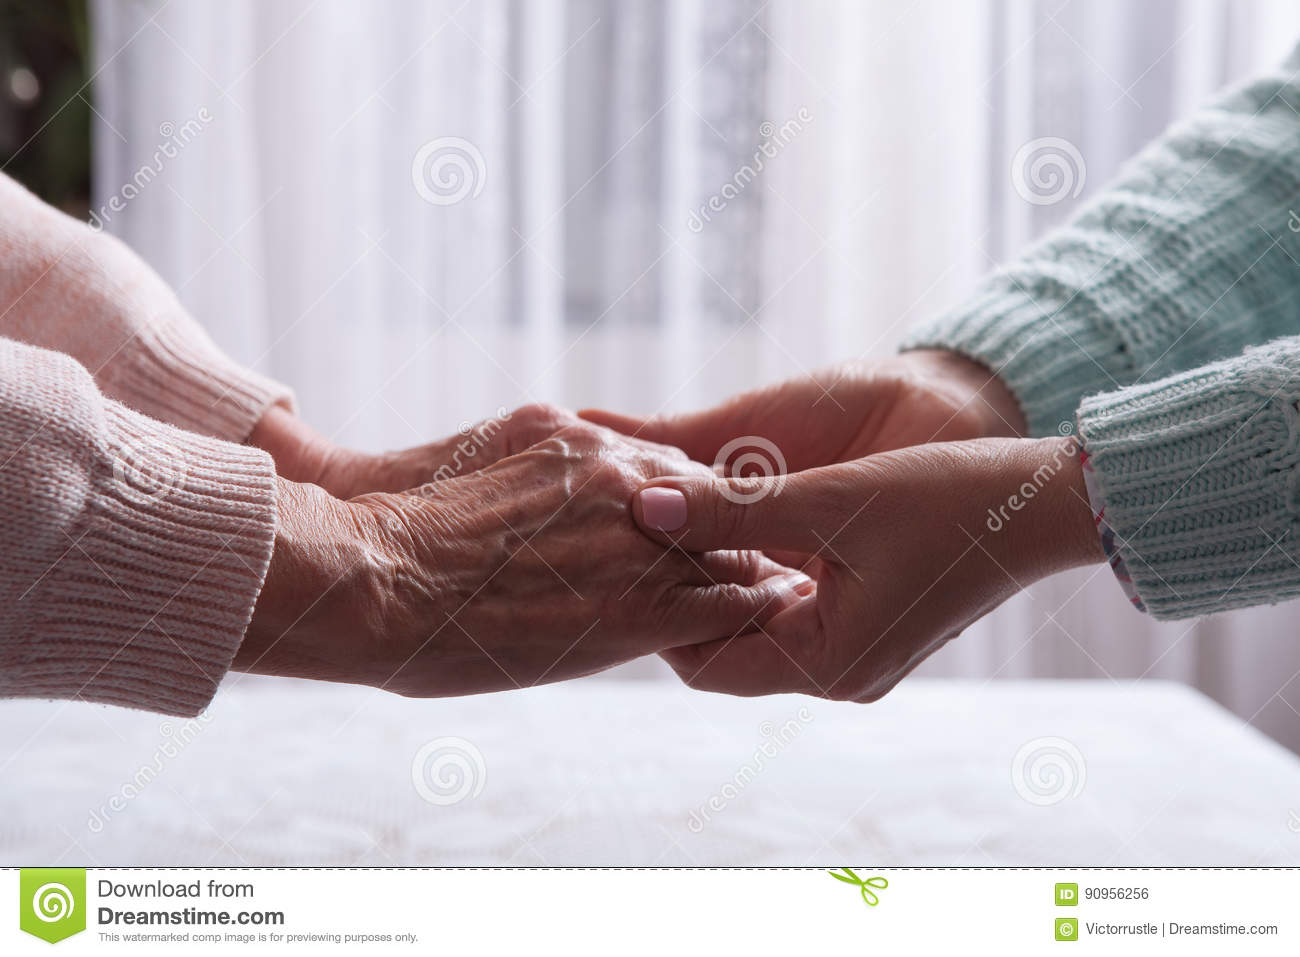 Care is at home of elderly. Senior woman with their caregiver at home. Concept of health care for elderly old people